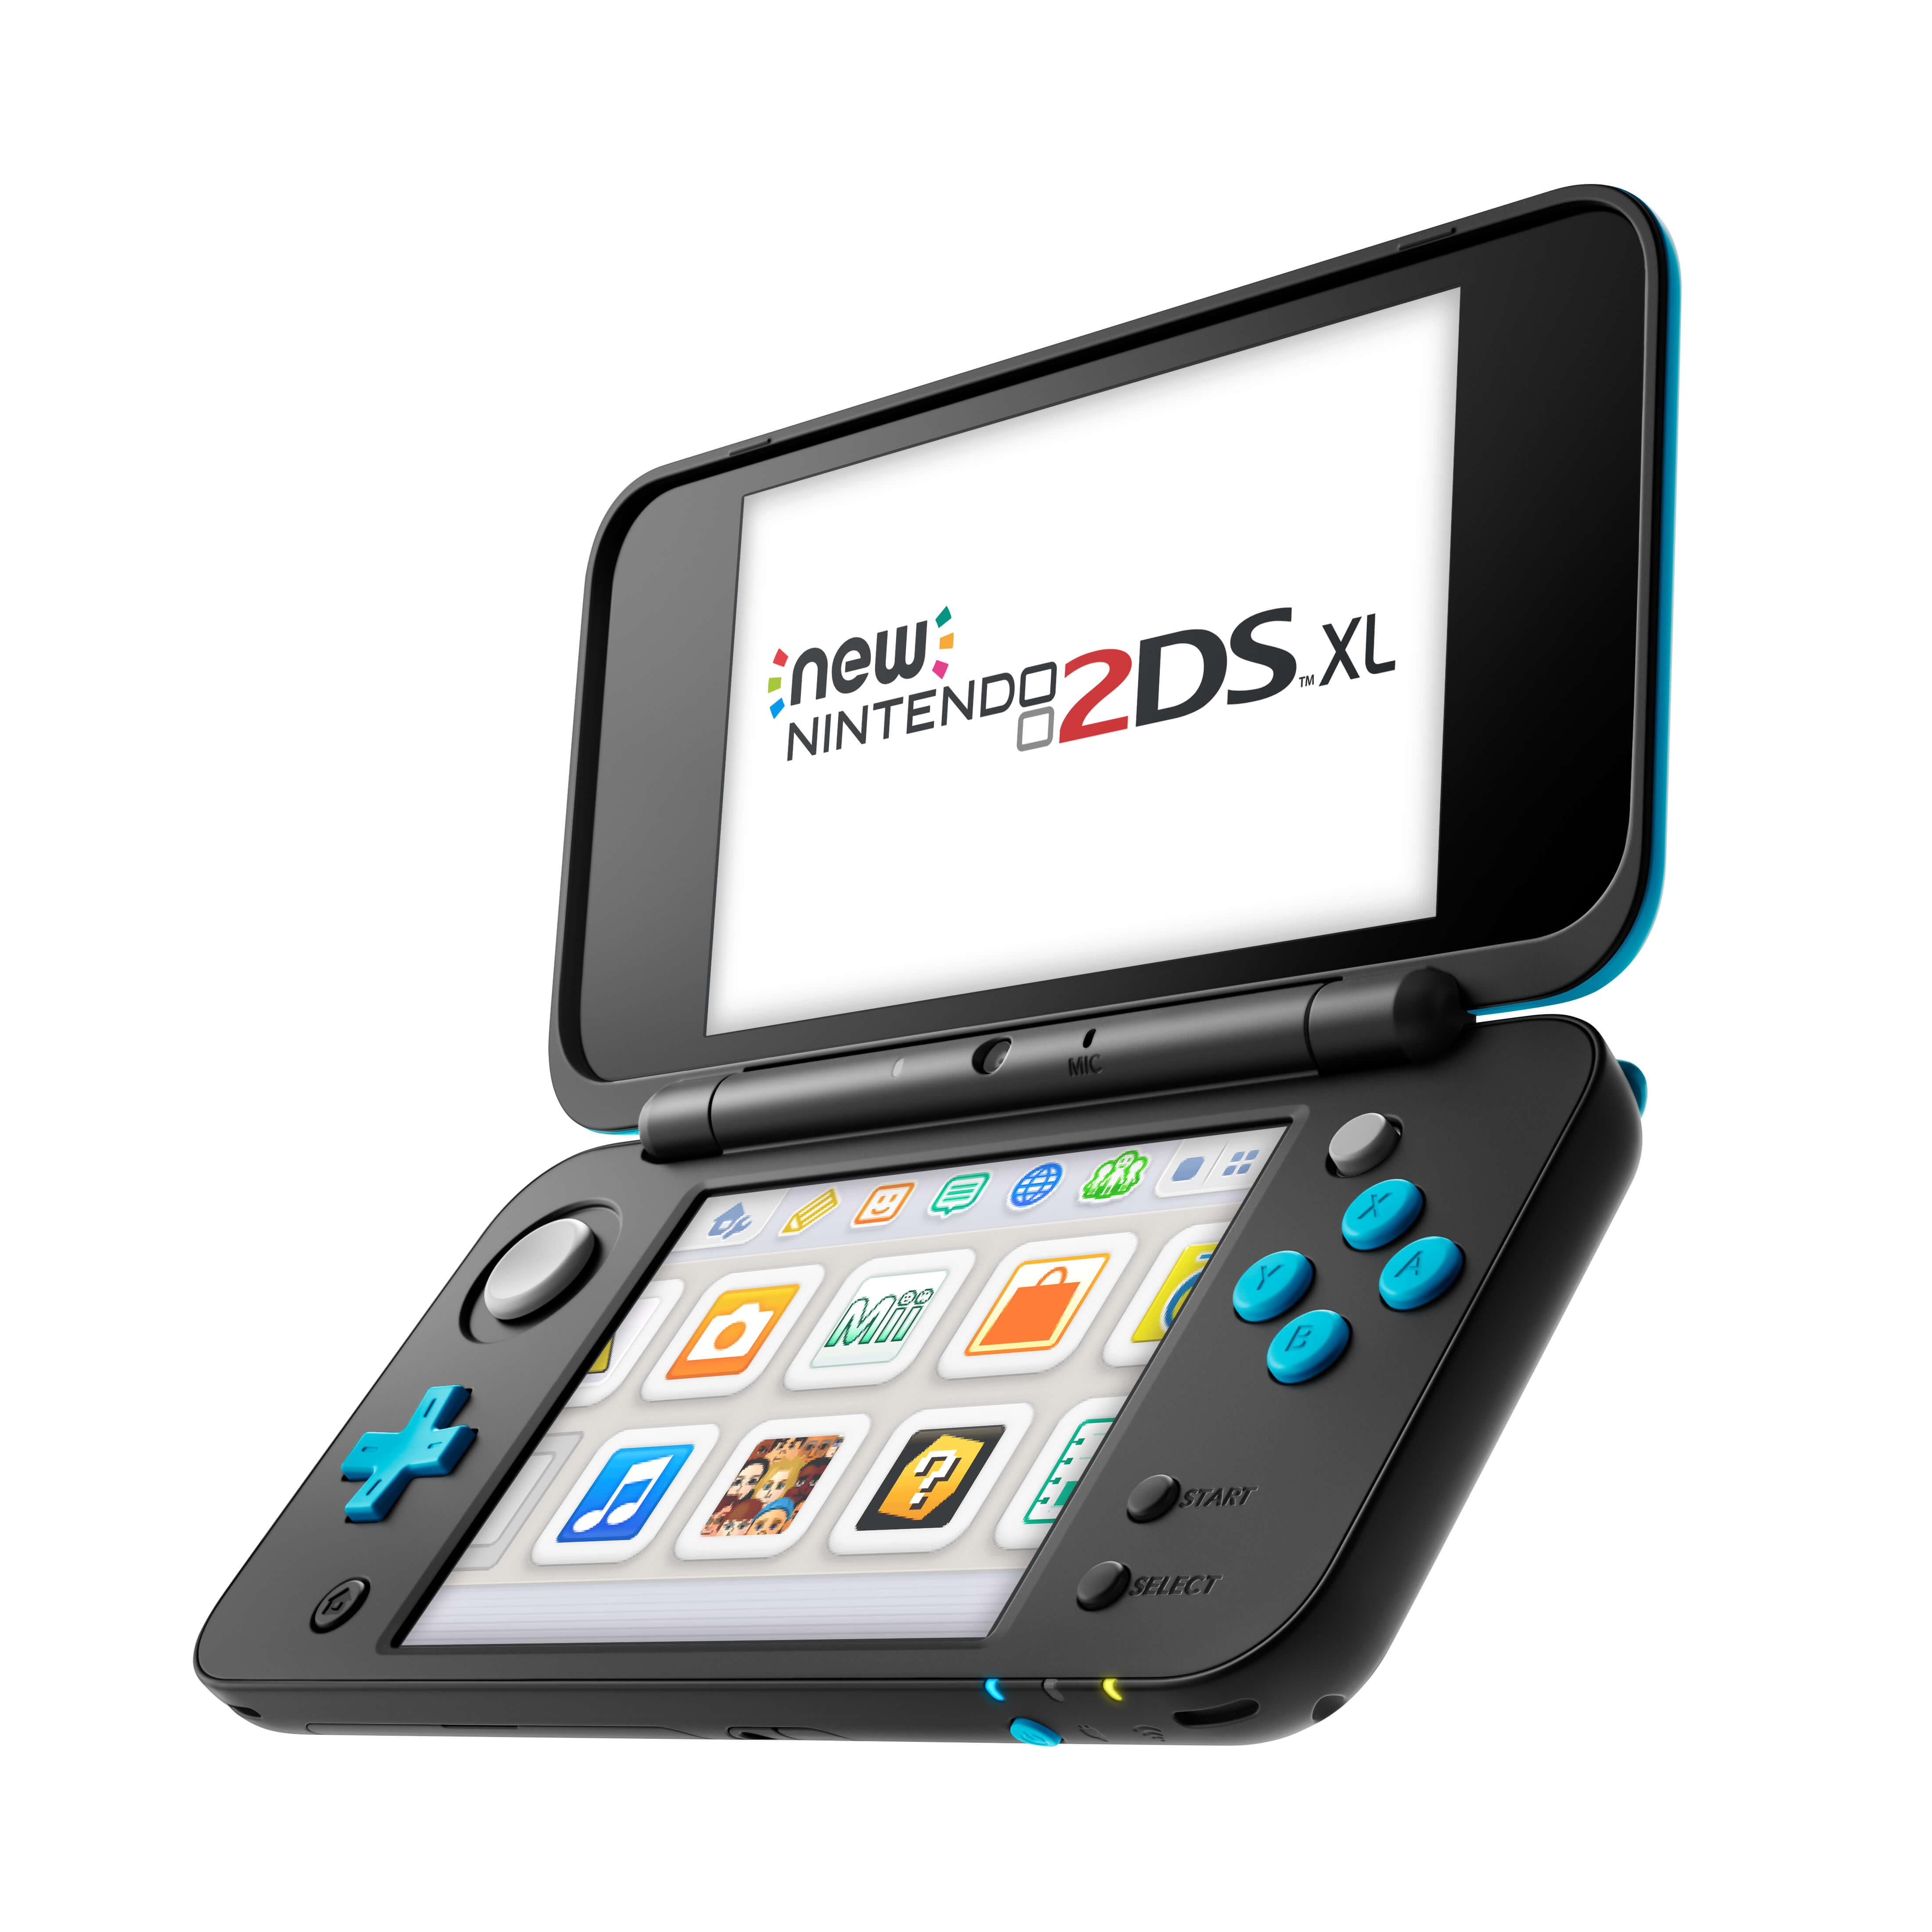 Difference Between Nintendo 2DS and 3DS